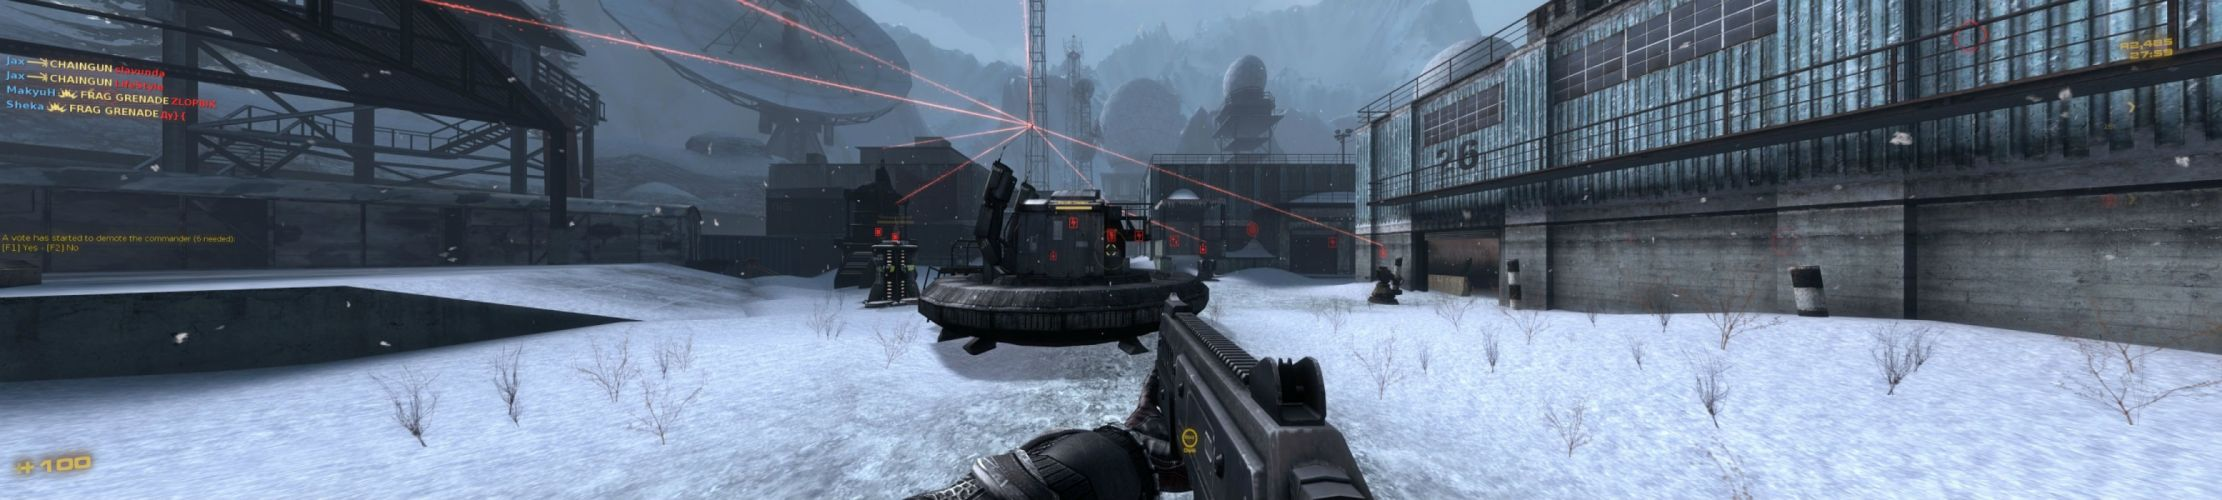 NUCLEAR-DAWN fps shooter sci-fi real-time strategy apocalyptic nuclear dawn (28) wallpaper